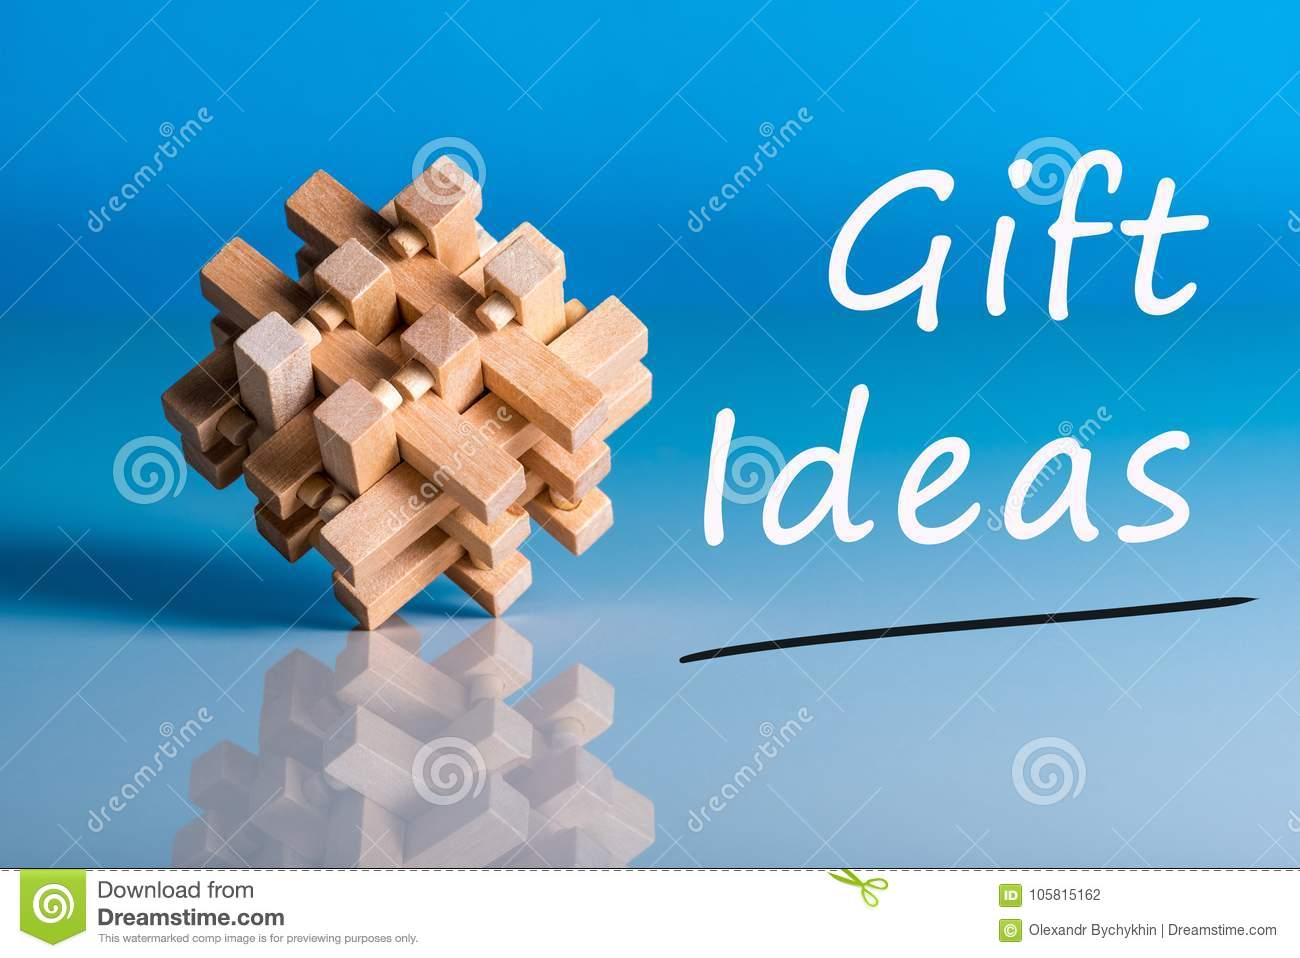 Gift Ideas Thinking About New Year Christmas Birthday And Valentine Day Gifts Online Shopping Brain Teaser Symbolizing A Difficult Task The